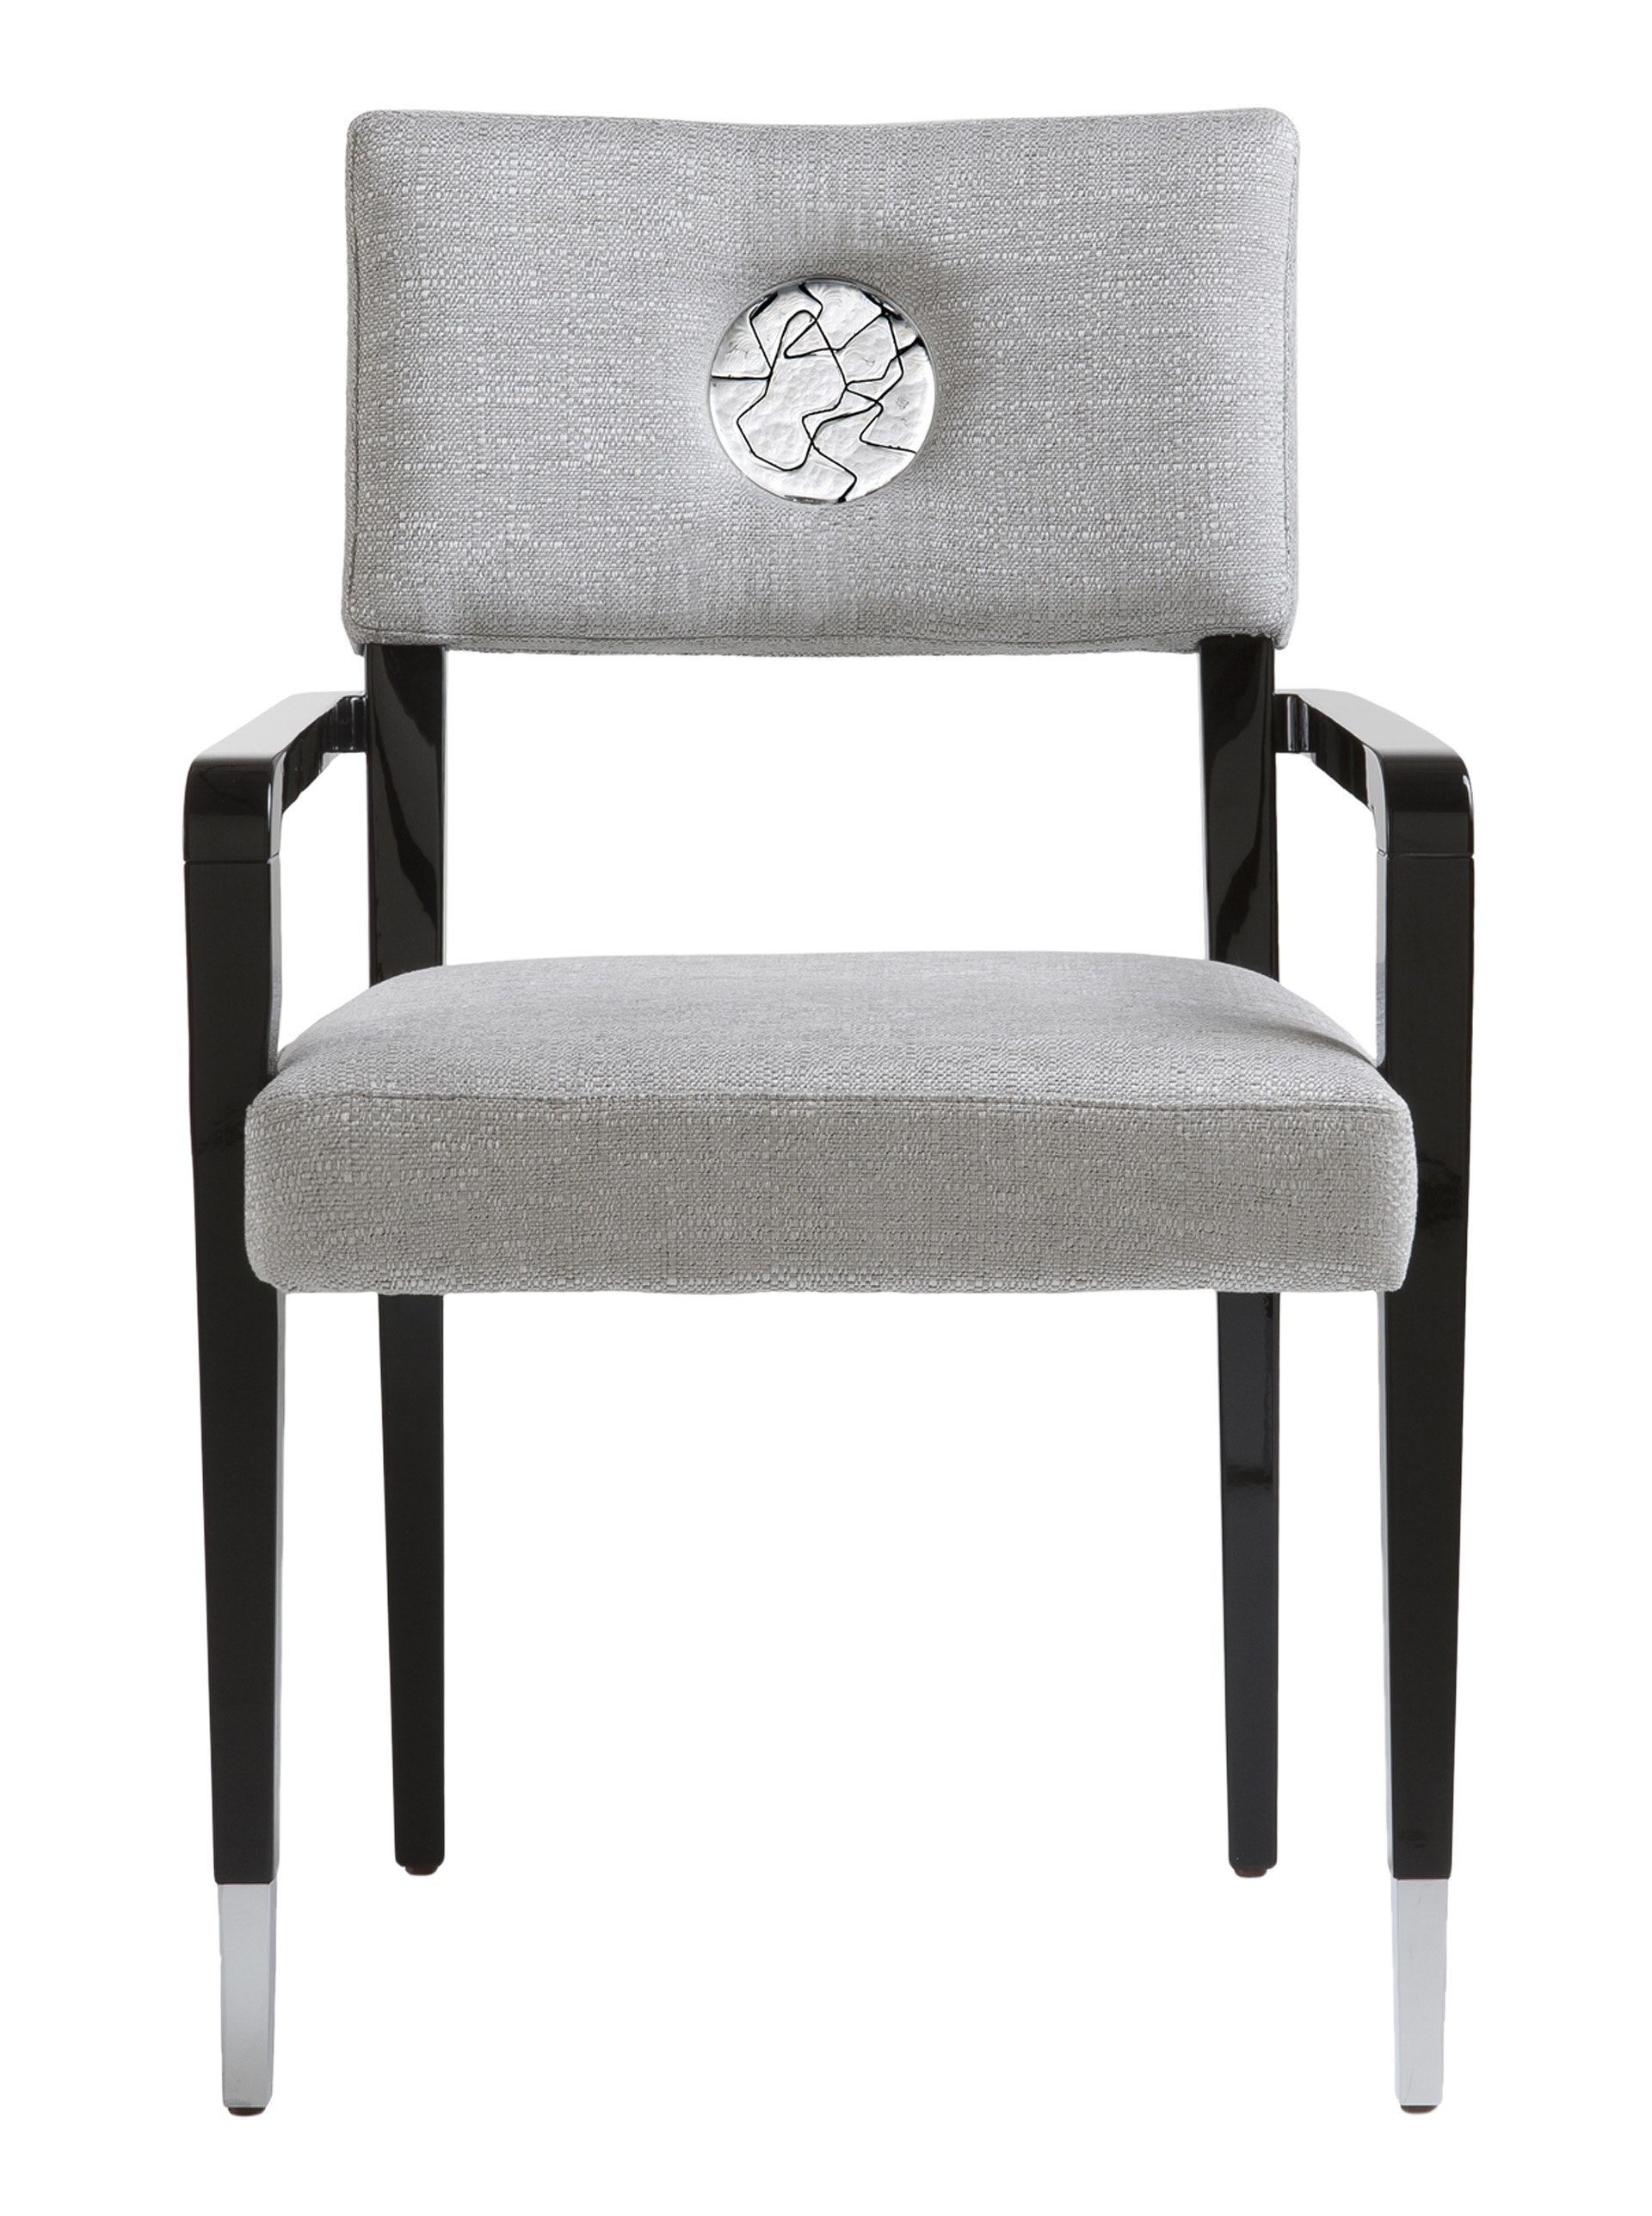 Moser Dining Chair By Arte Veneziana Dining Chairs Chair